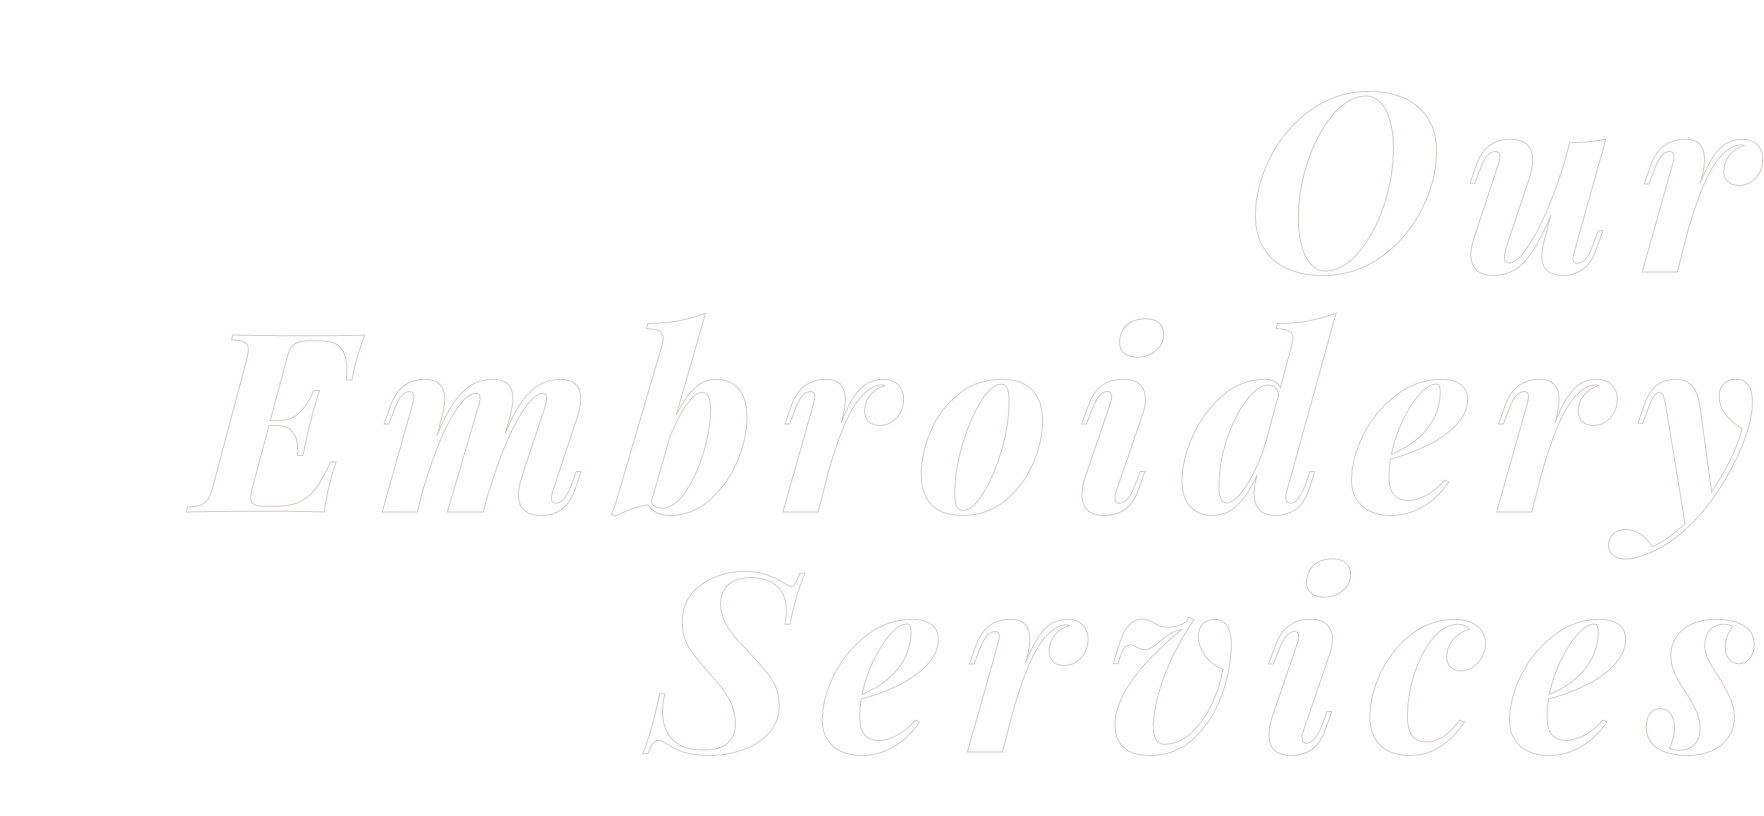 Our Embroidery Services